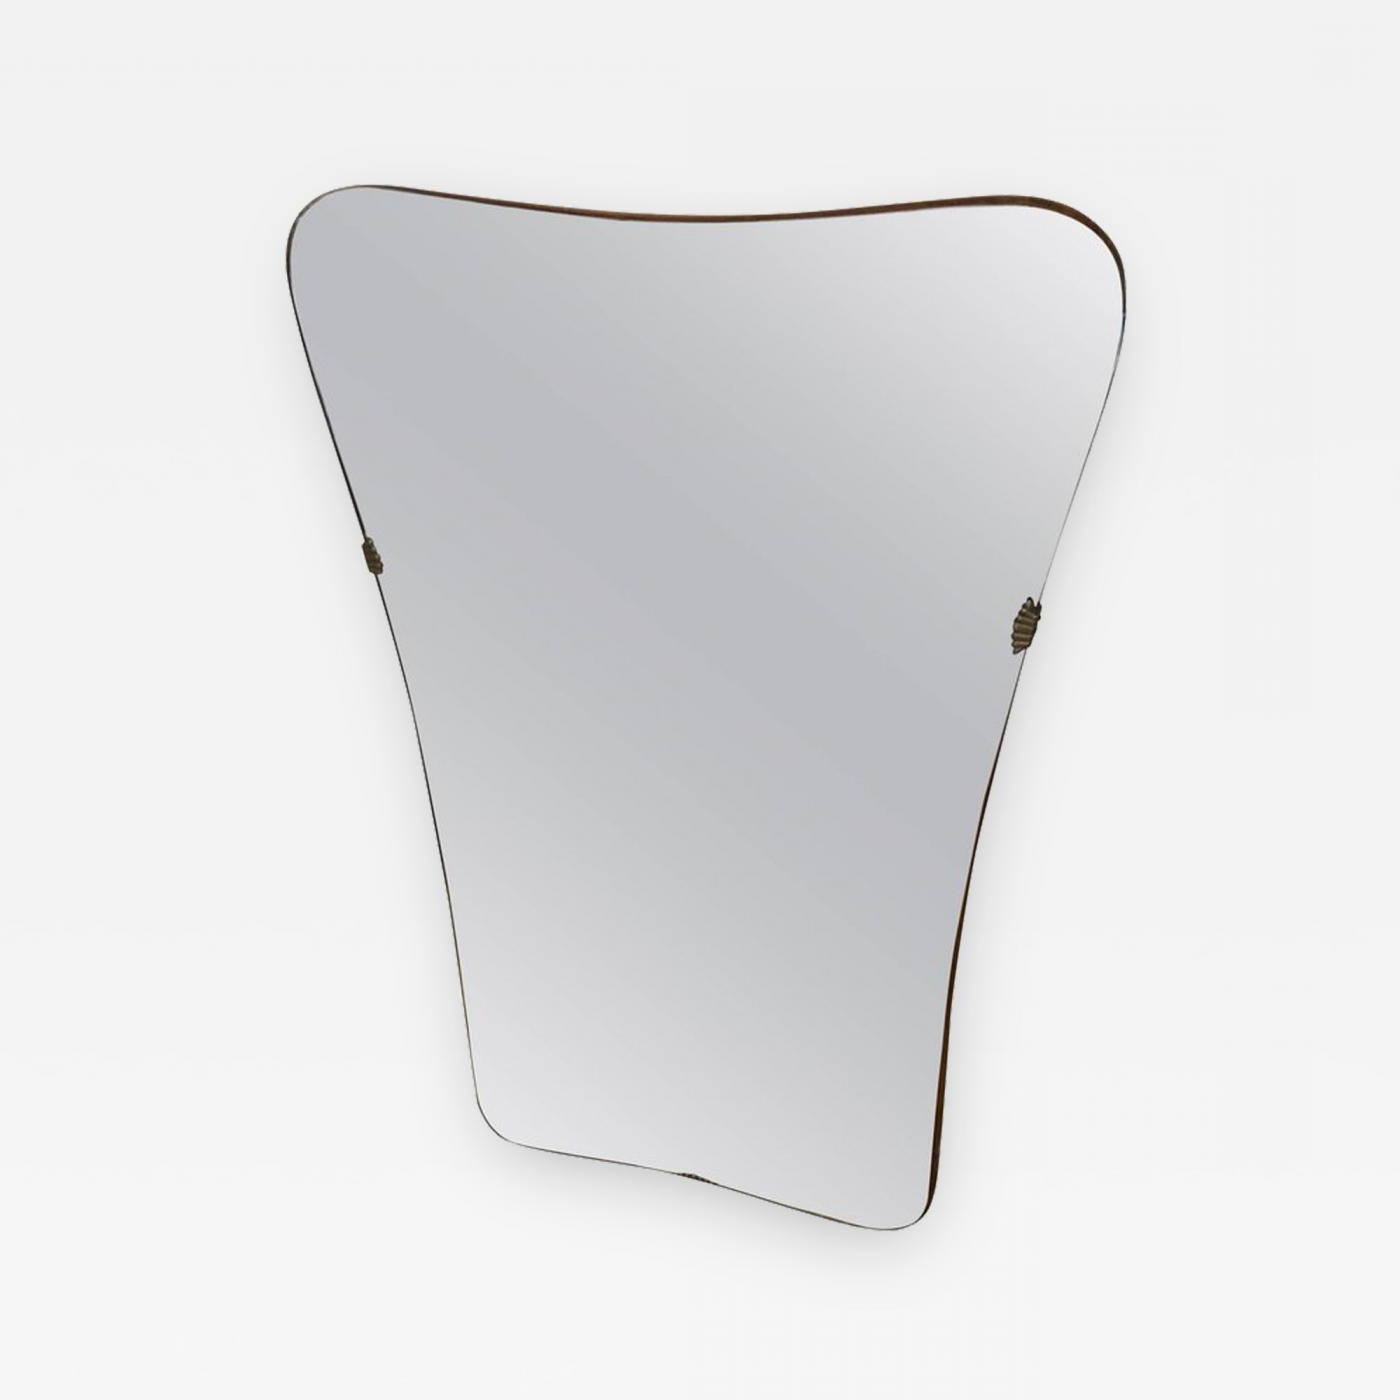 Favorite Gio Ponti – Italian Mid Century Modern Wall Mirror In The Style Of Gio Ponti Inside Mid Century Modern Wall Mirrors (View 10 of 20)